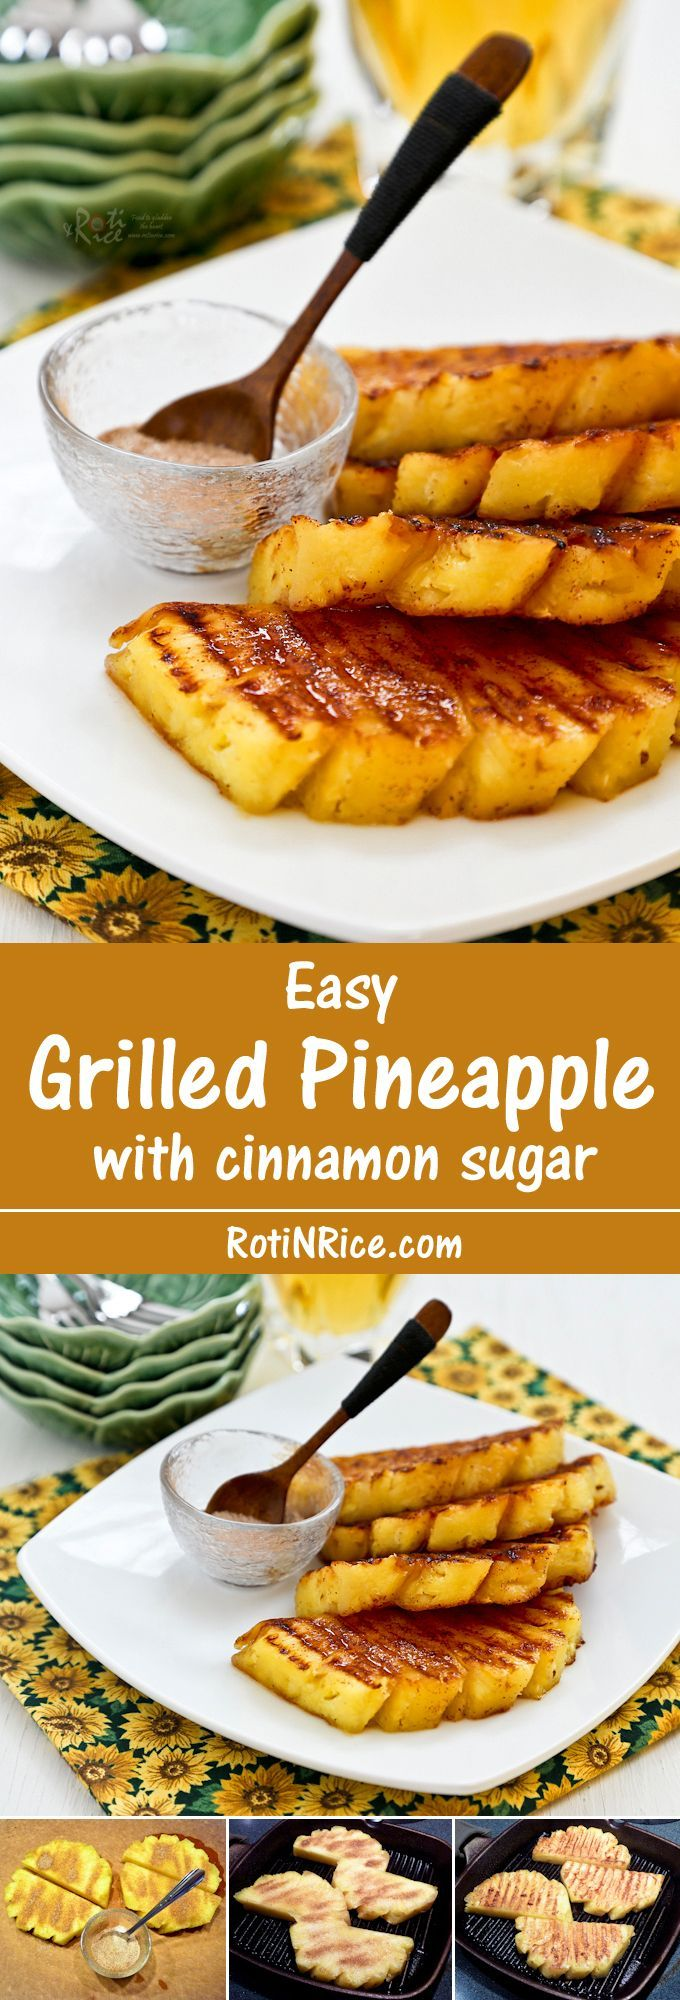 Simple and tasty Grilled Pineapple with cinnamon sugar, a delicious accompaniment to grilled and roasted meats. It is also great as a snack or dessert. | Food to gladden the heart at http://RotiNRice.com